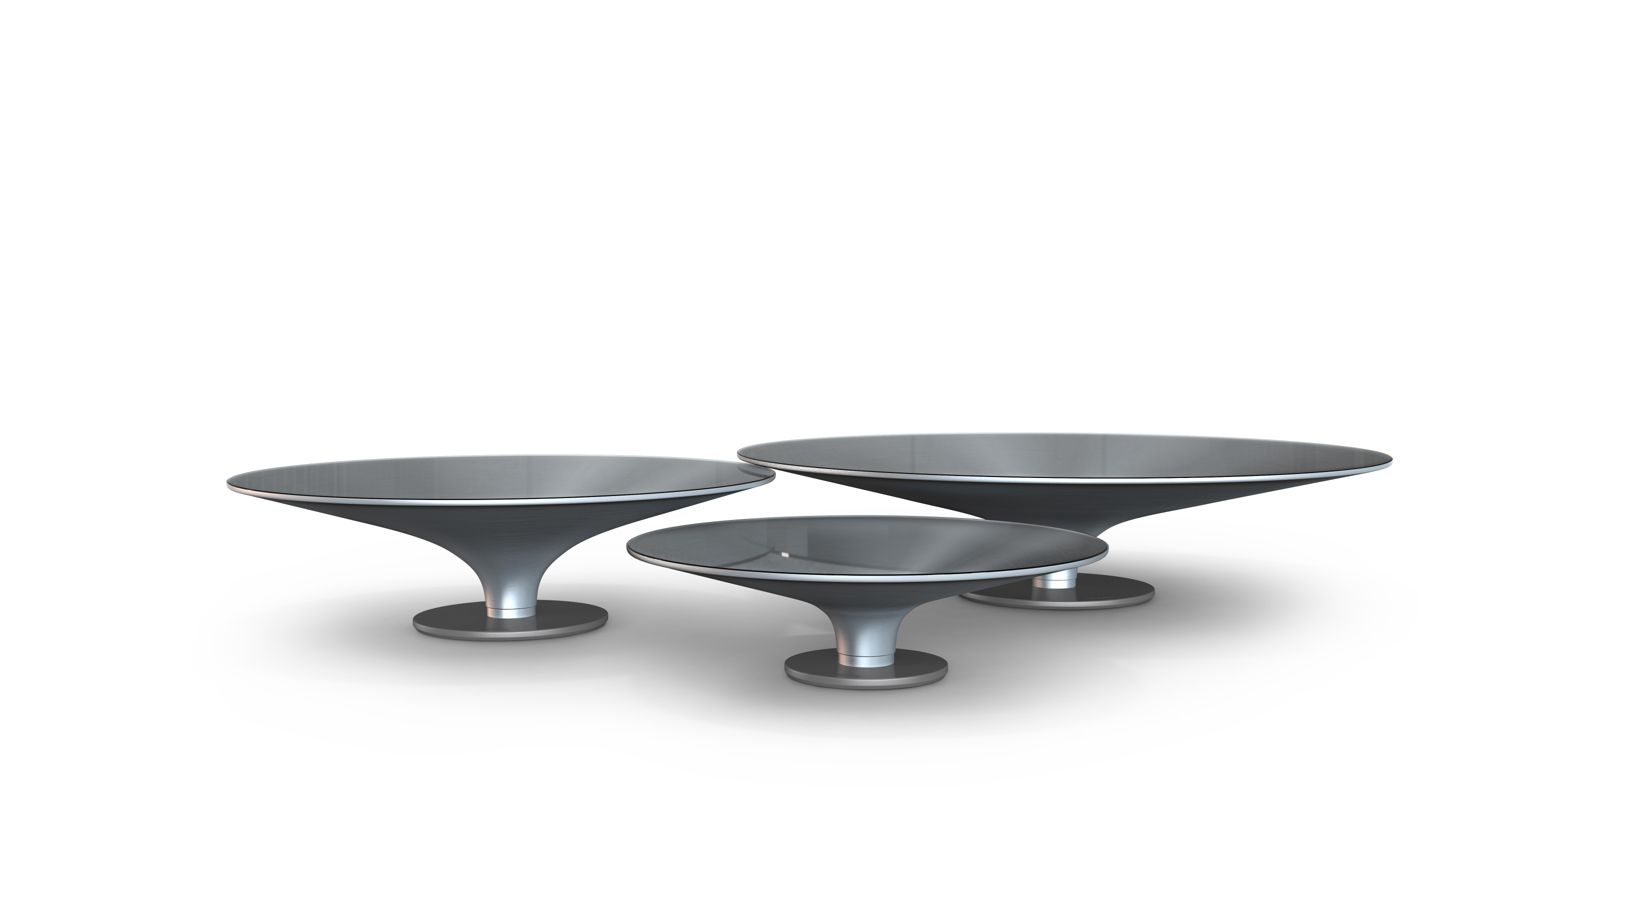 Grande table basse roche bobois - Fabriquer table basse design ...